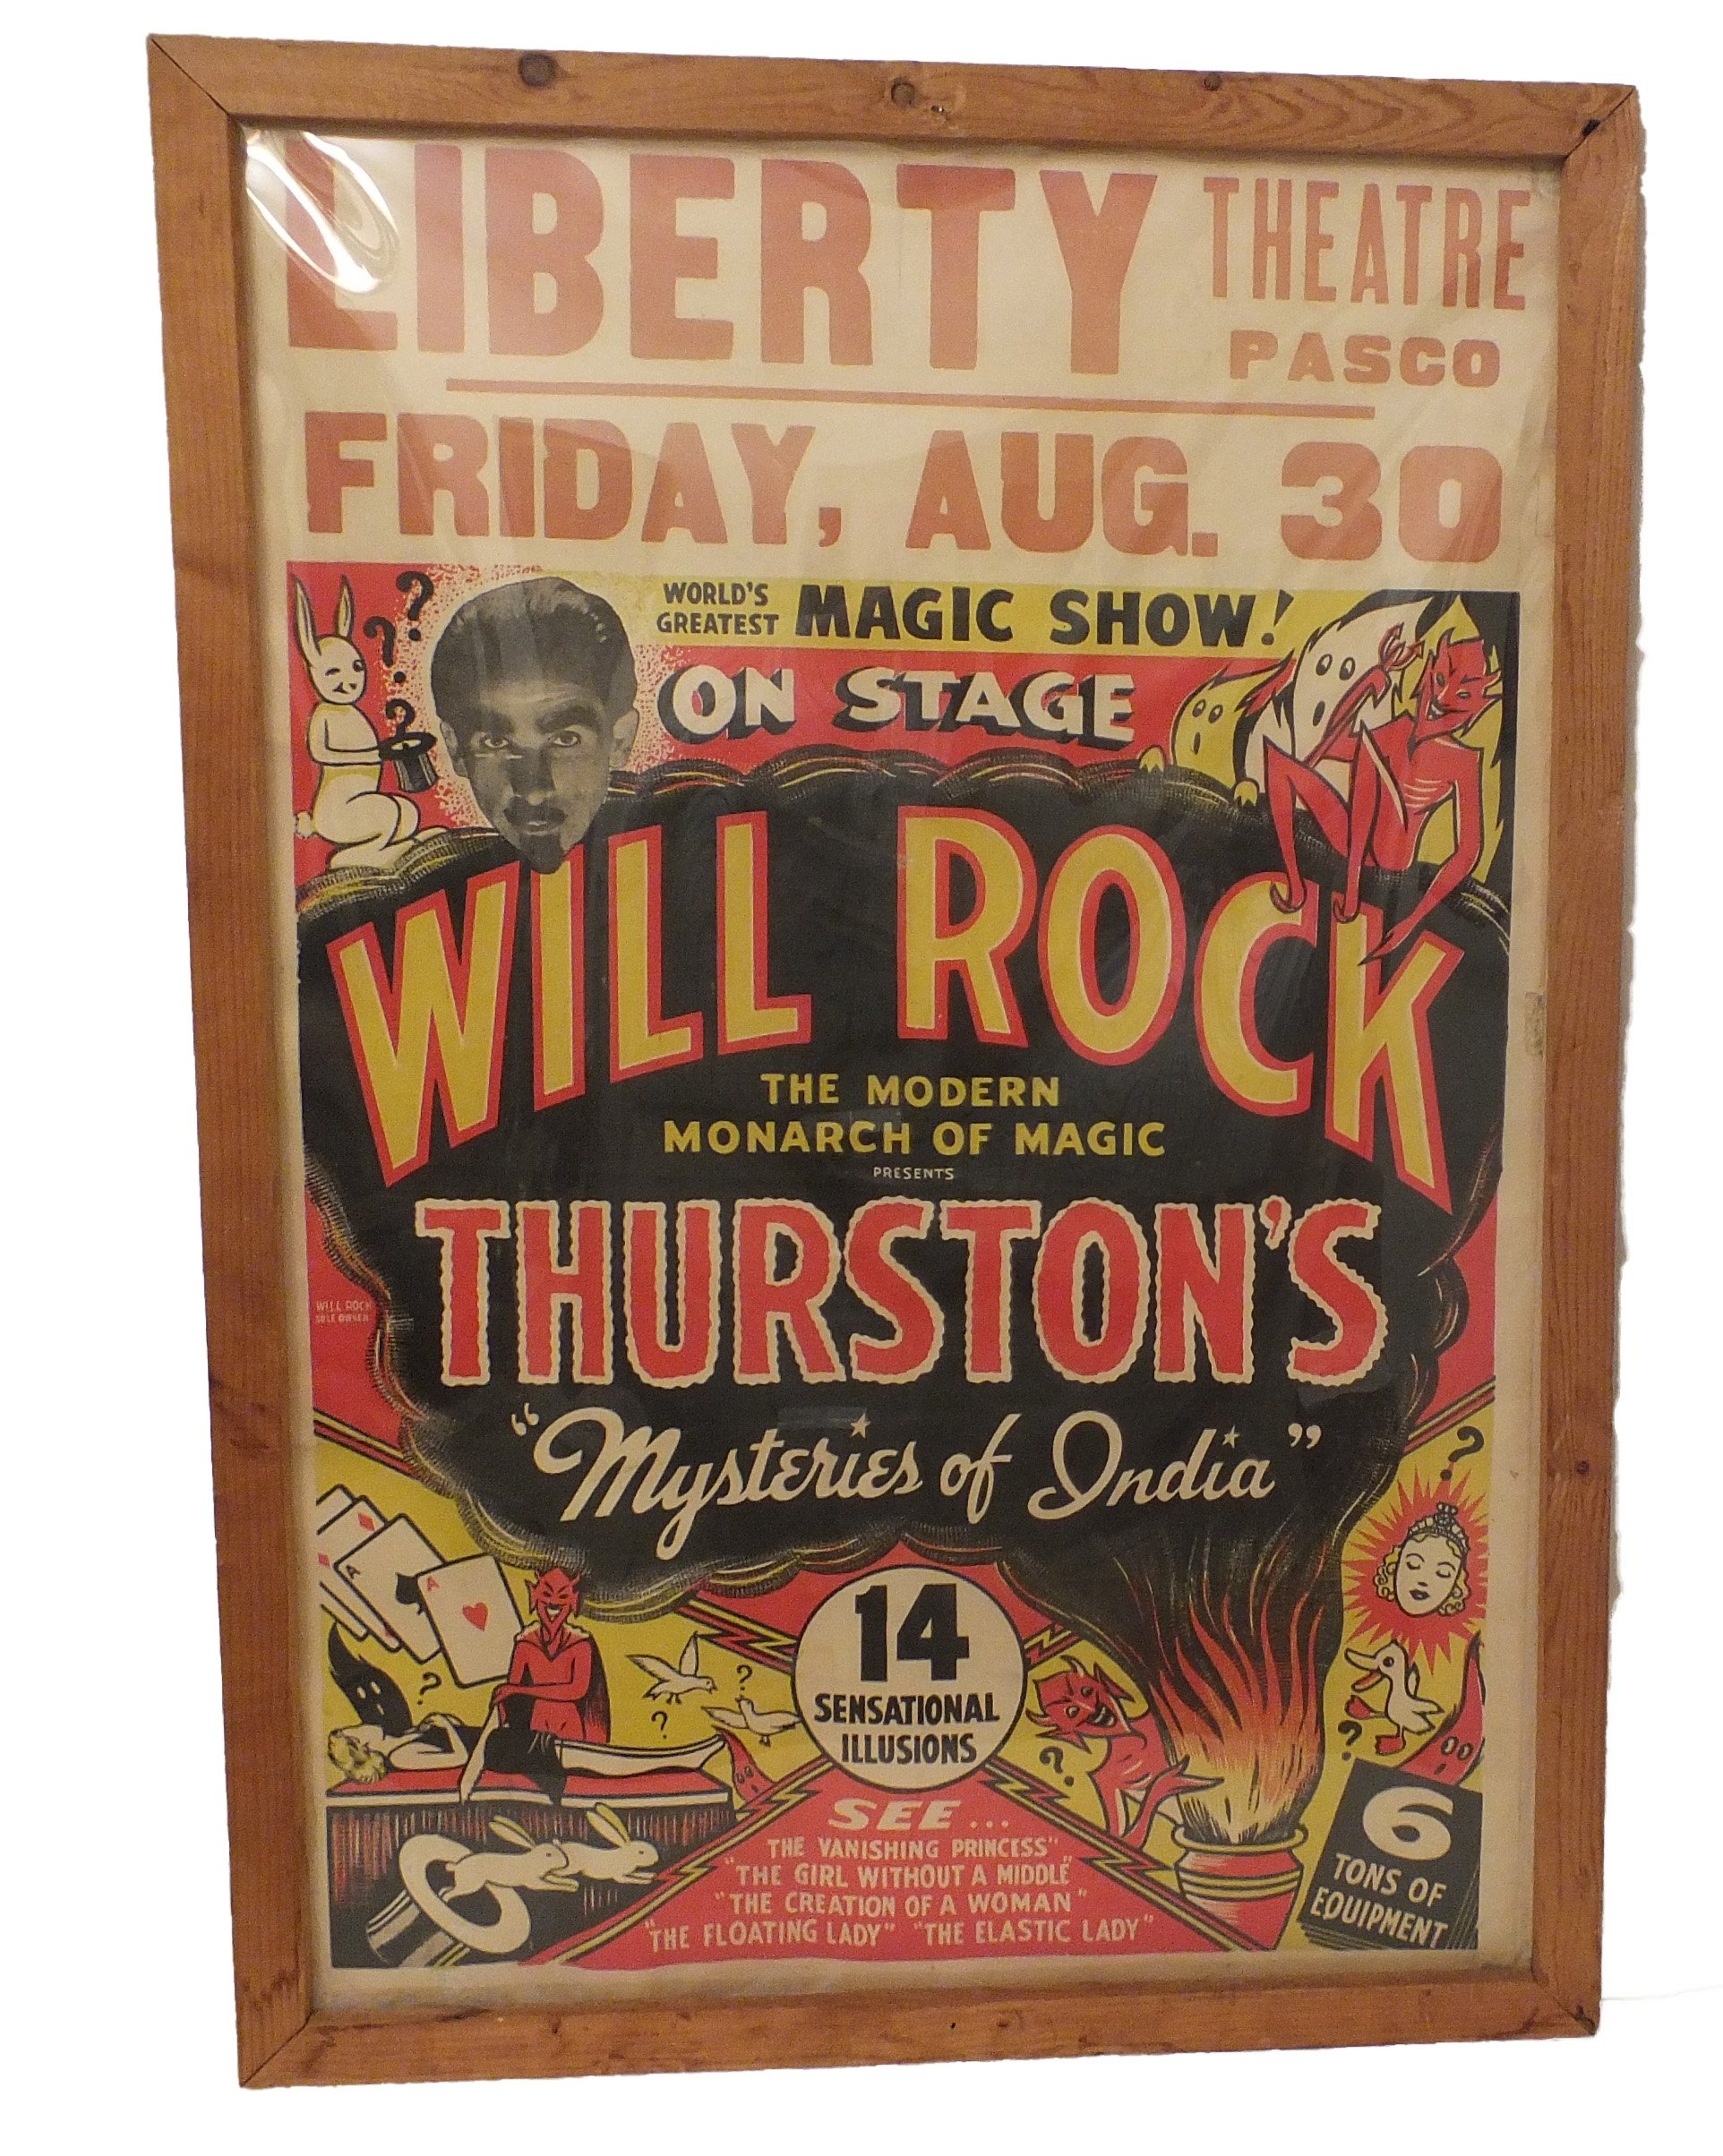 https://0201.nccdn.net/1_2/000/000/15c/876/POSTER---THURSTON-AT-LIBERTY-THEATRE.jpg